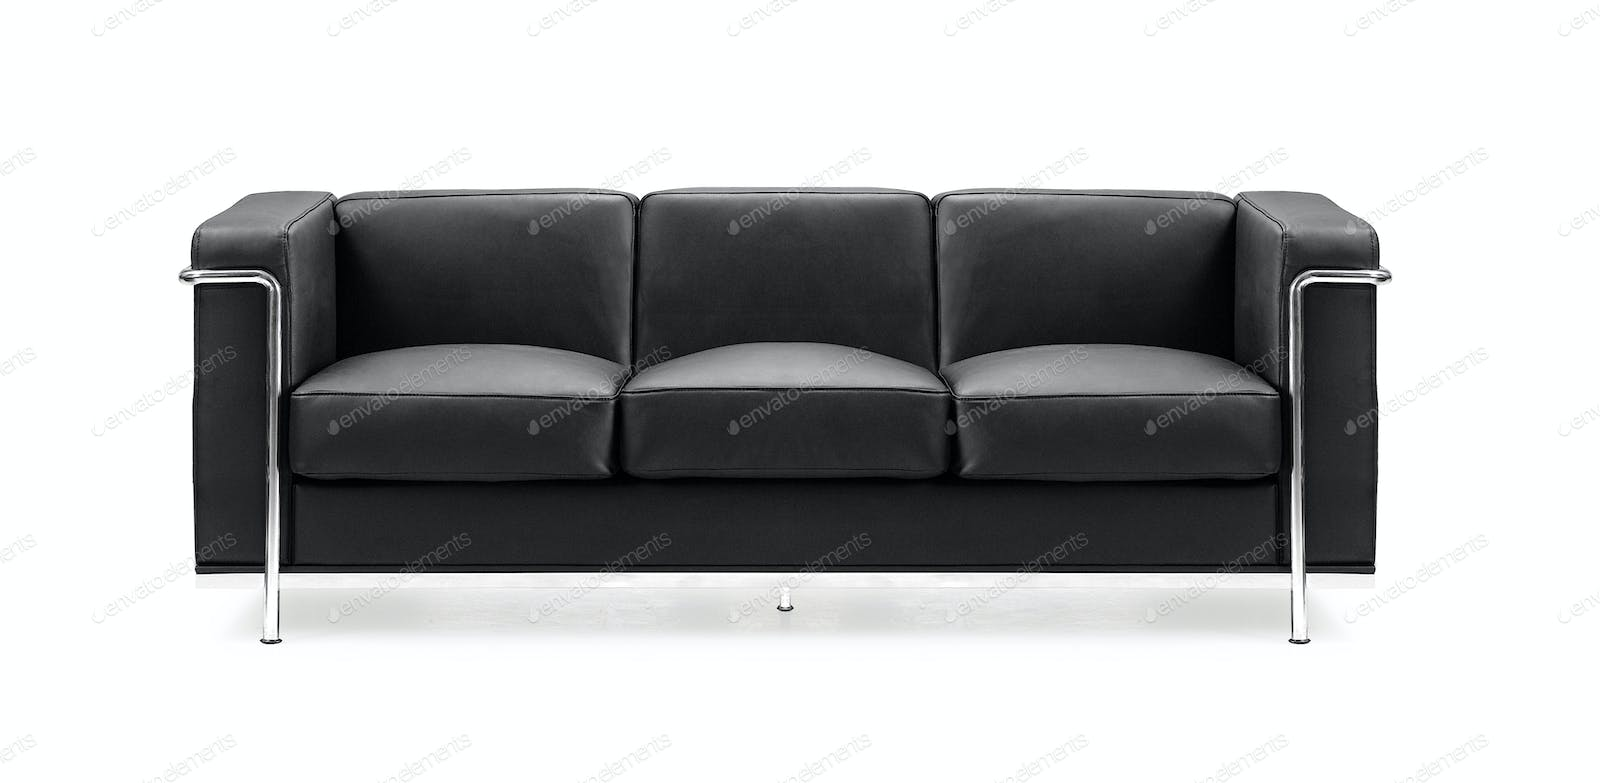 Image Of A Modern Black Leather Sofa